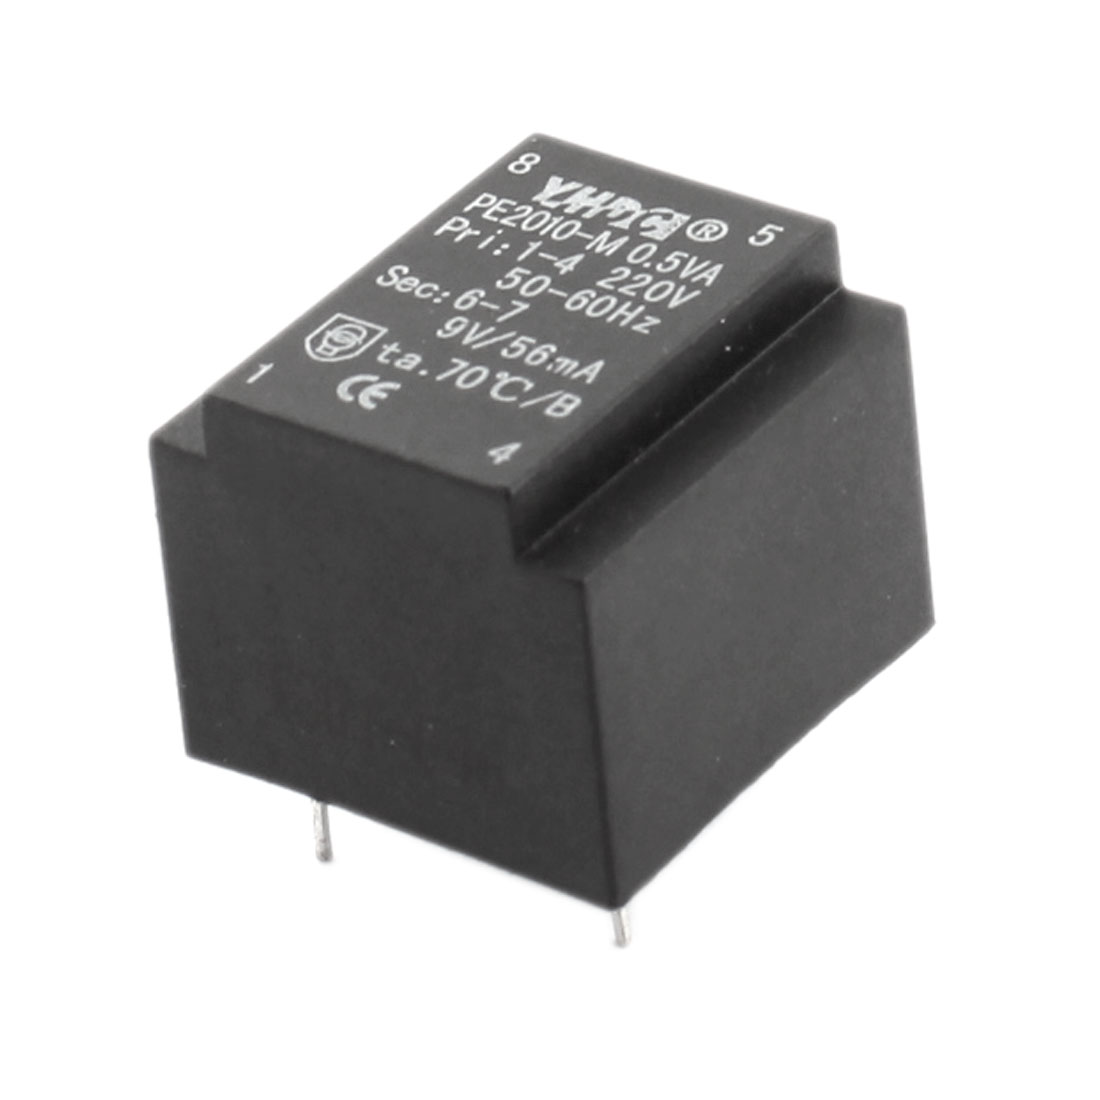 AC 220V to 9V 50-60Hz 56mA 4-pin Microwave Oven Power Transformer